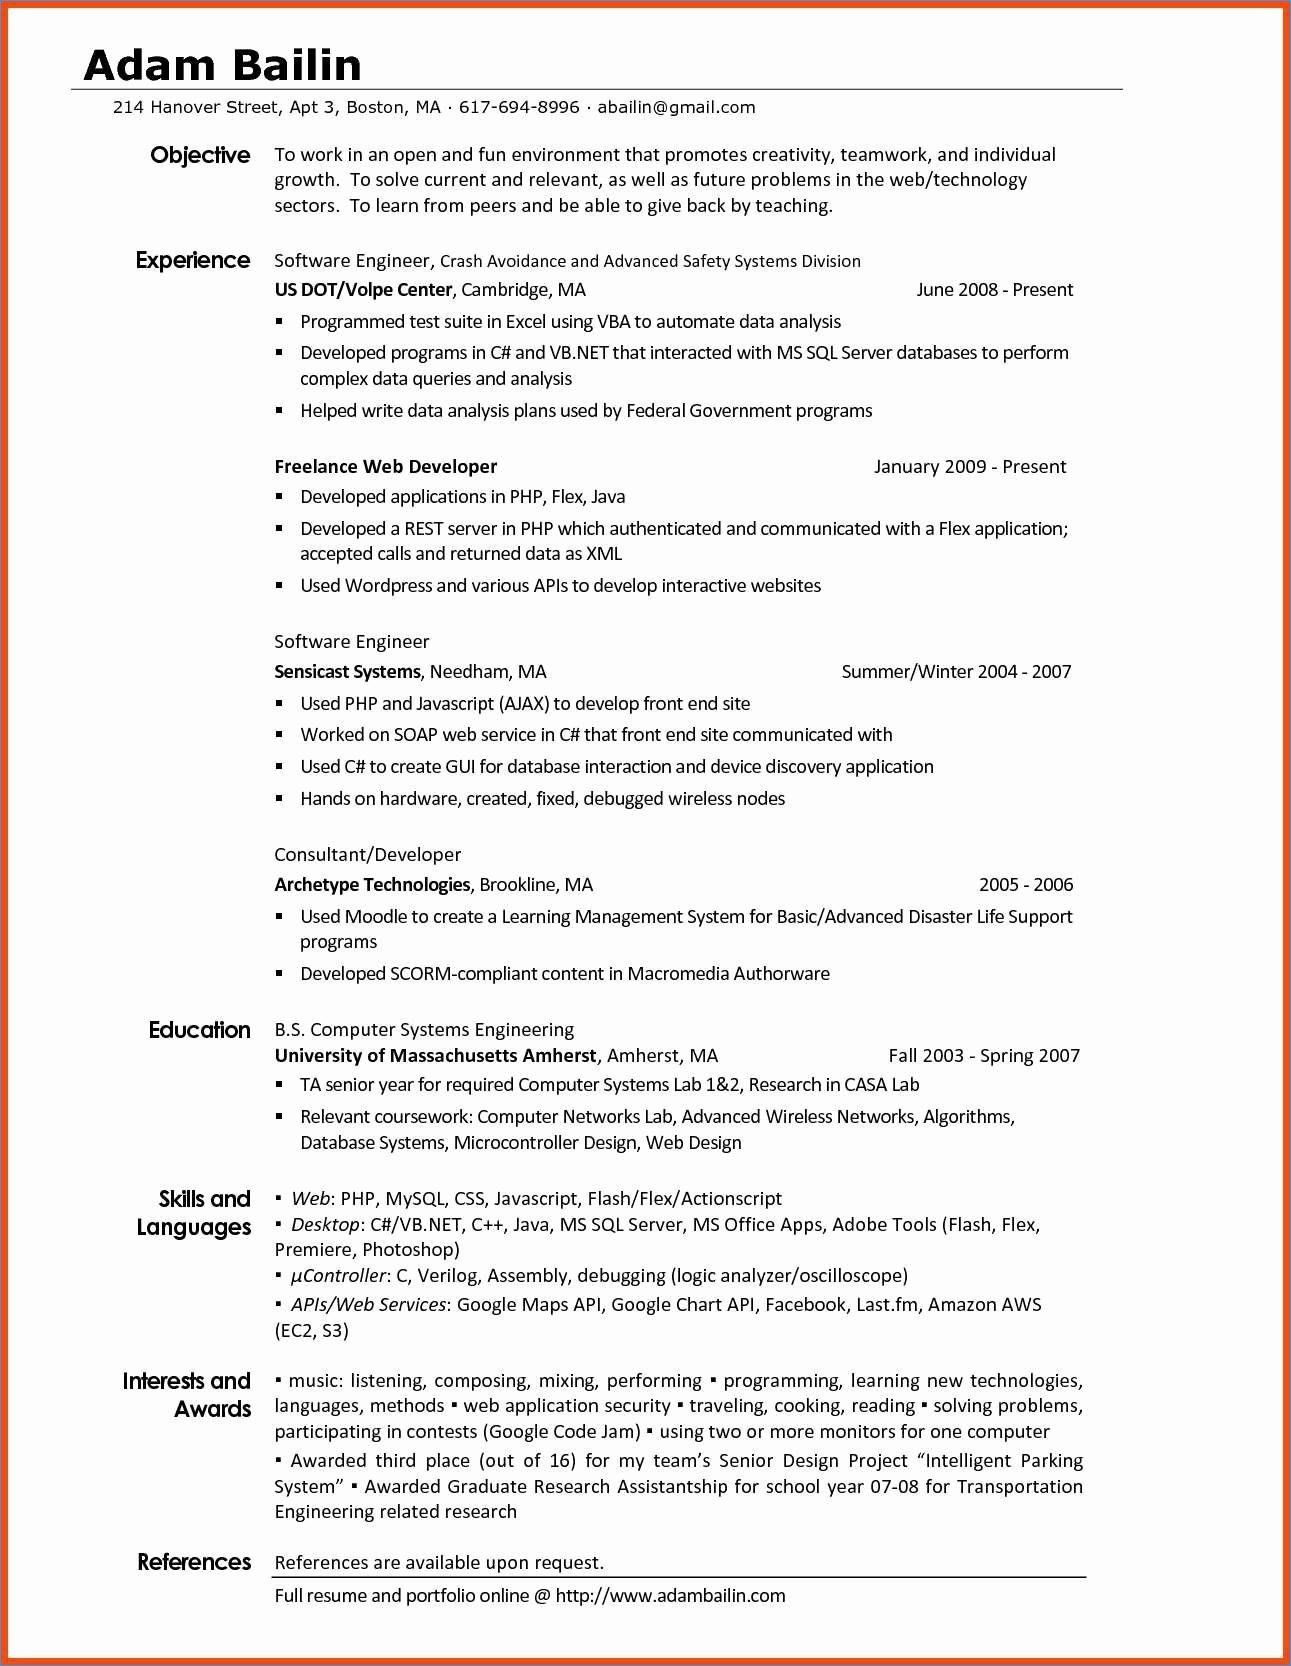 Interests On A Resume New Interests A Resume Resume Examples Resume Template Examples Project Manager Resume